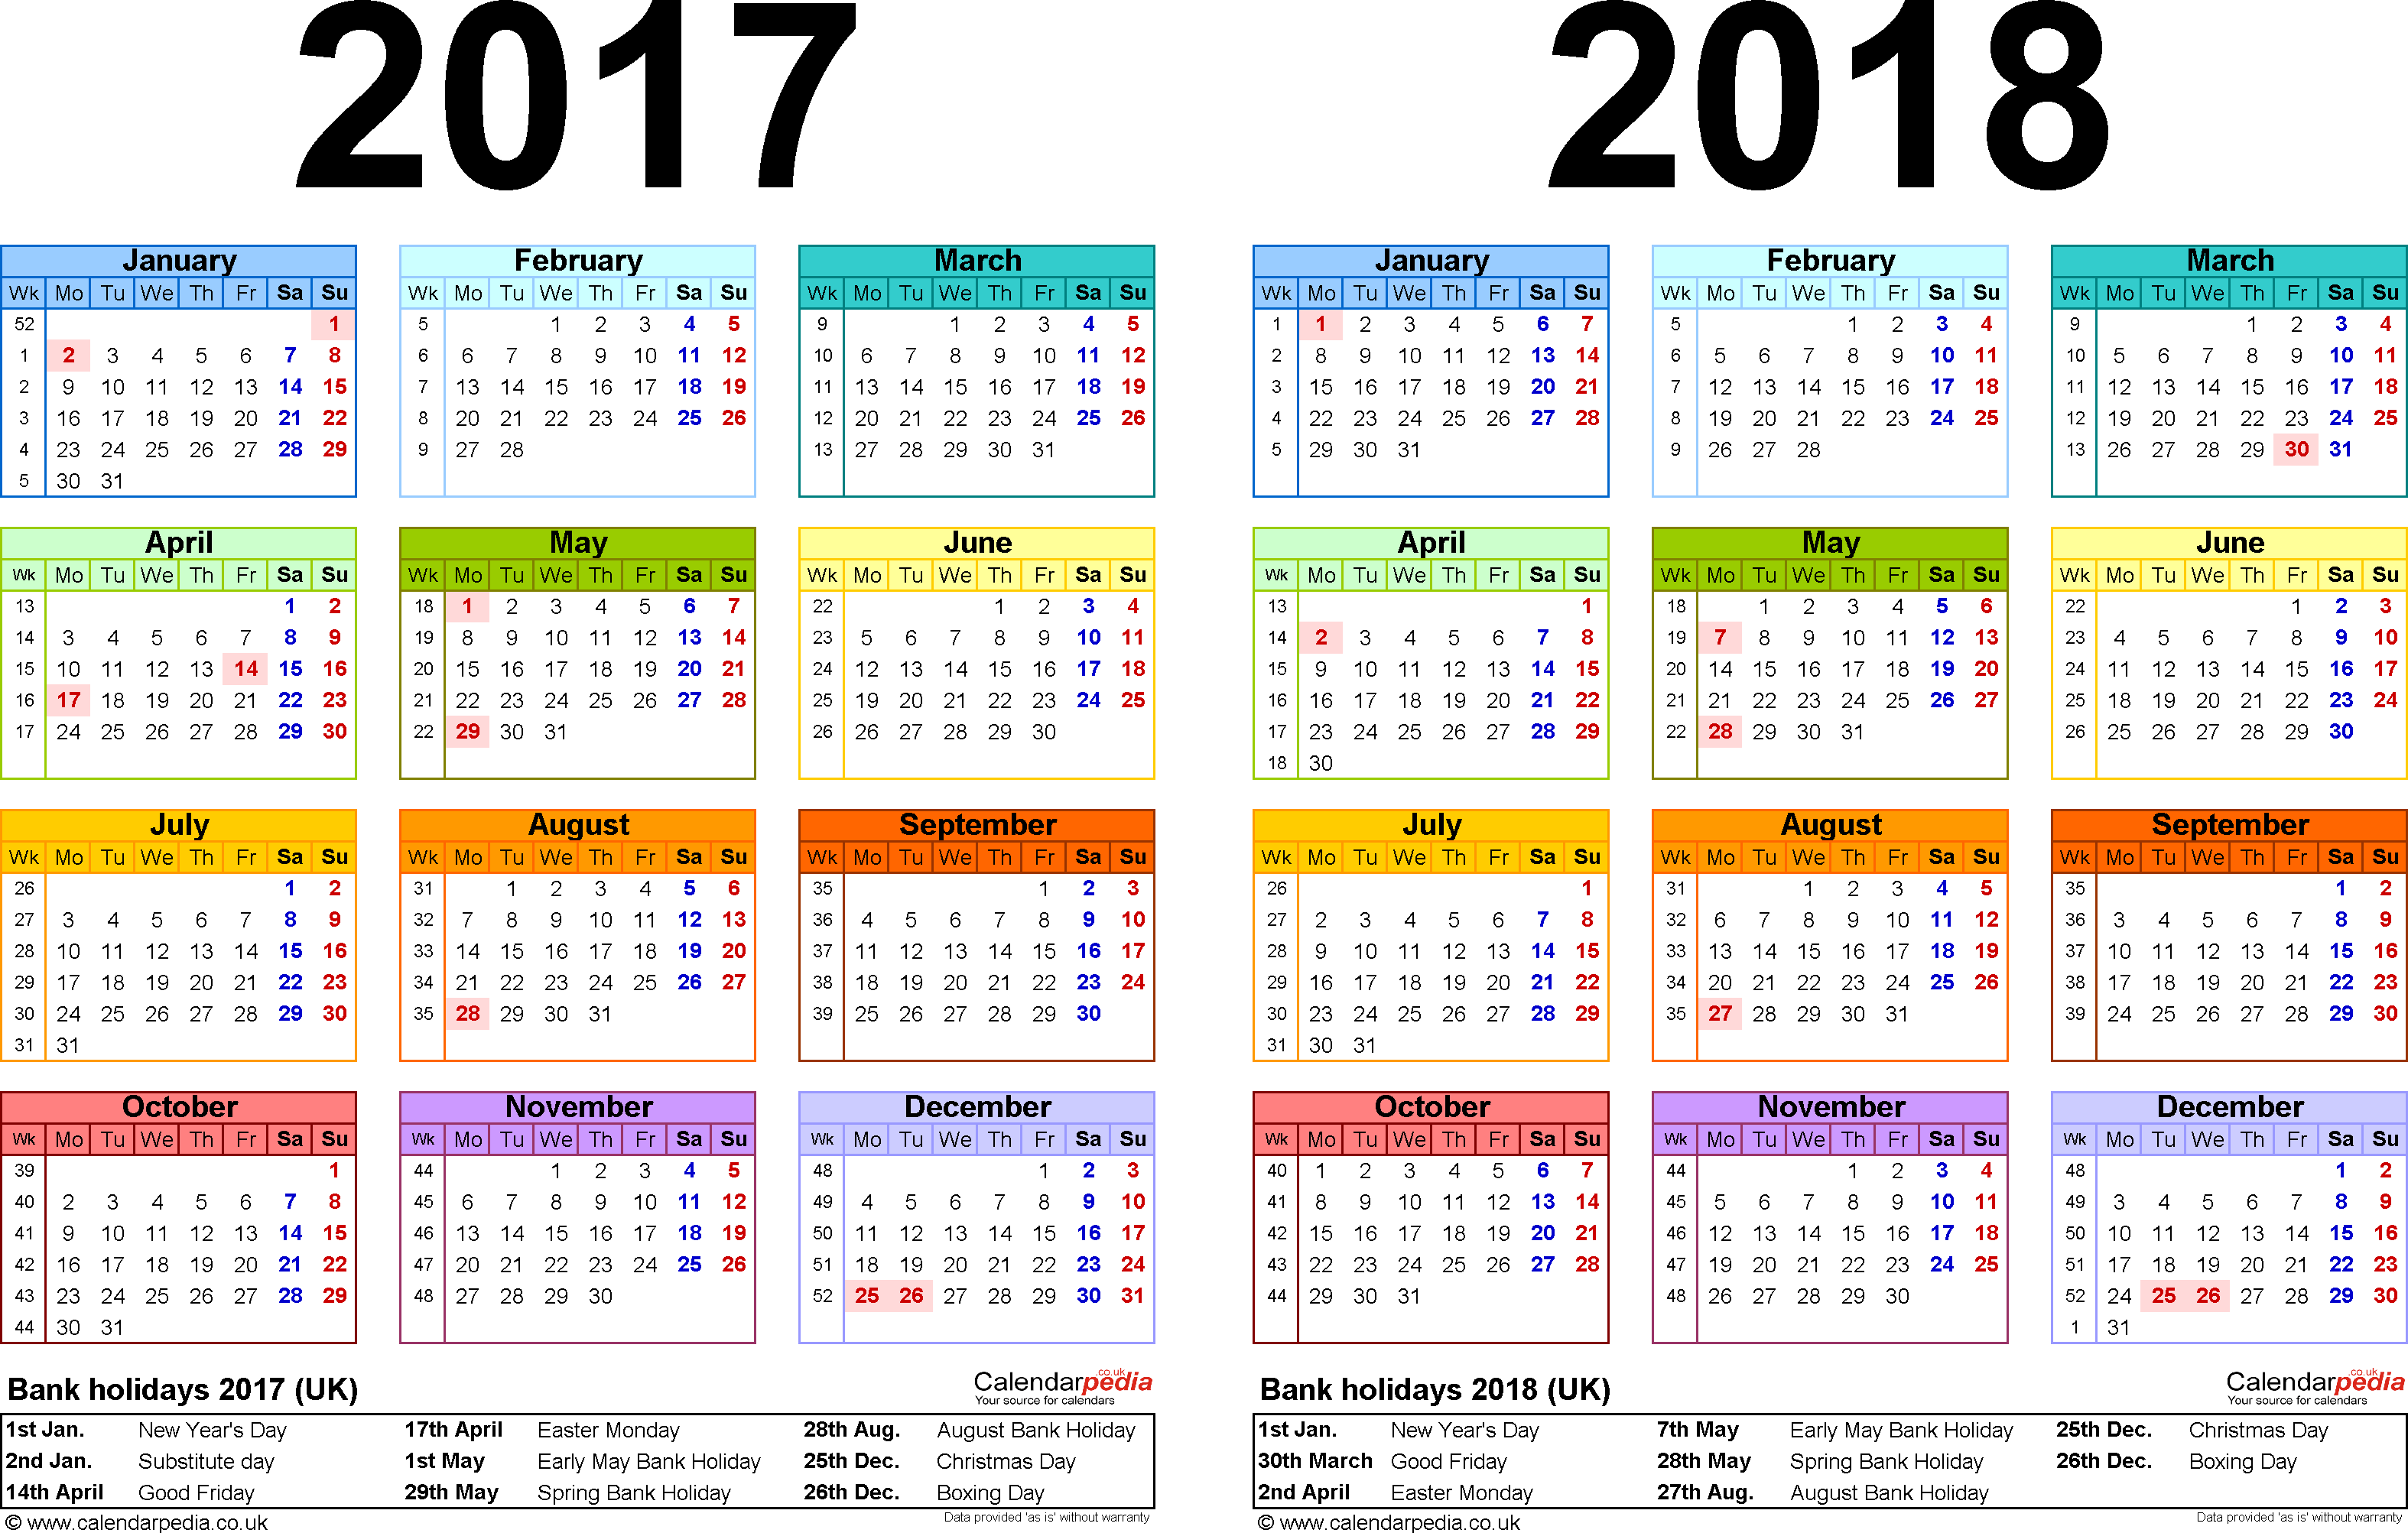 Download Template 2: Excel template for two year calendar 2017/2018 multi-coloured (landscape orientation, 1 page, A4)